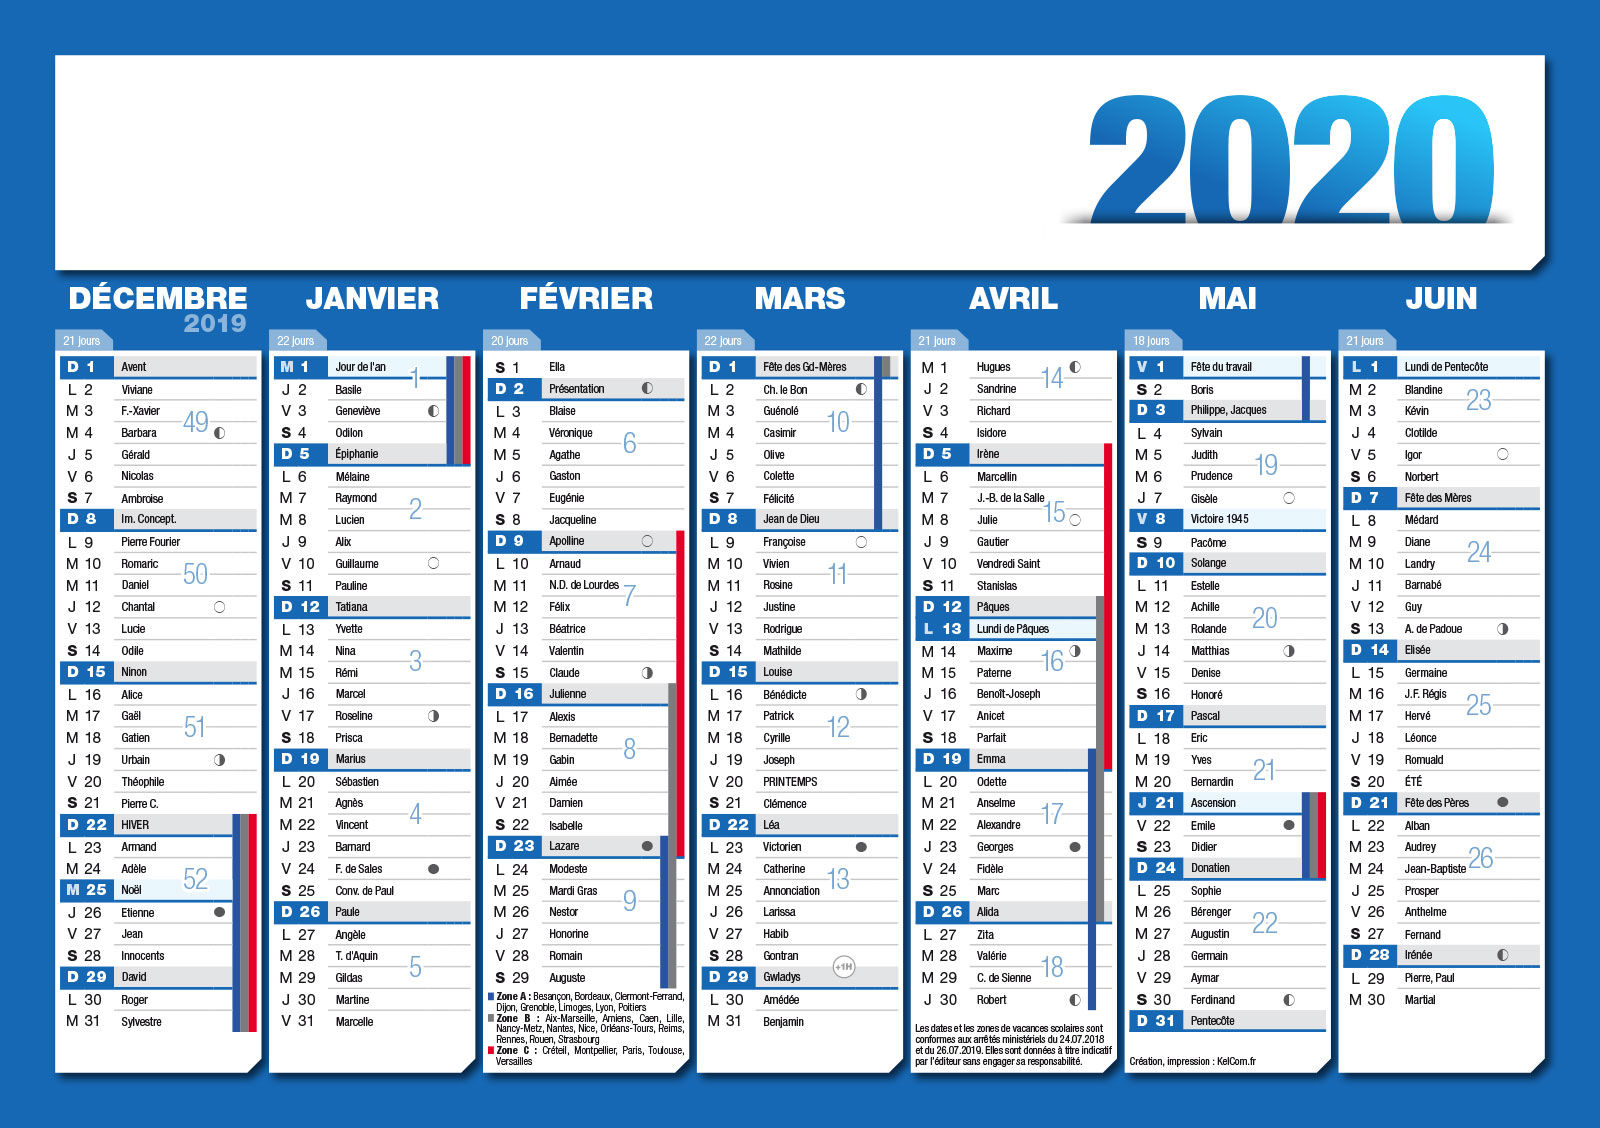 Calendrier Perso.Calendriers Publicitaire Personnalise